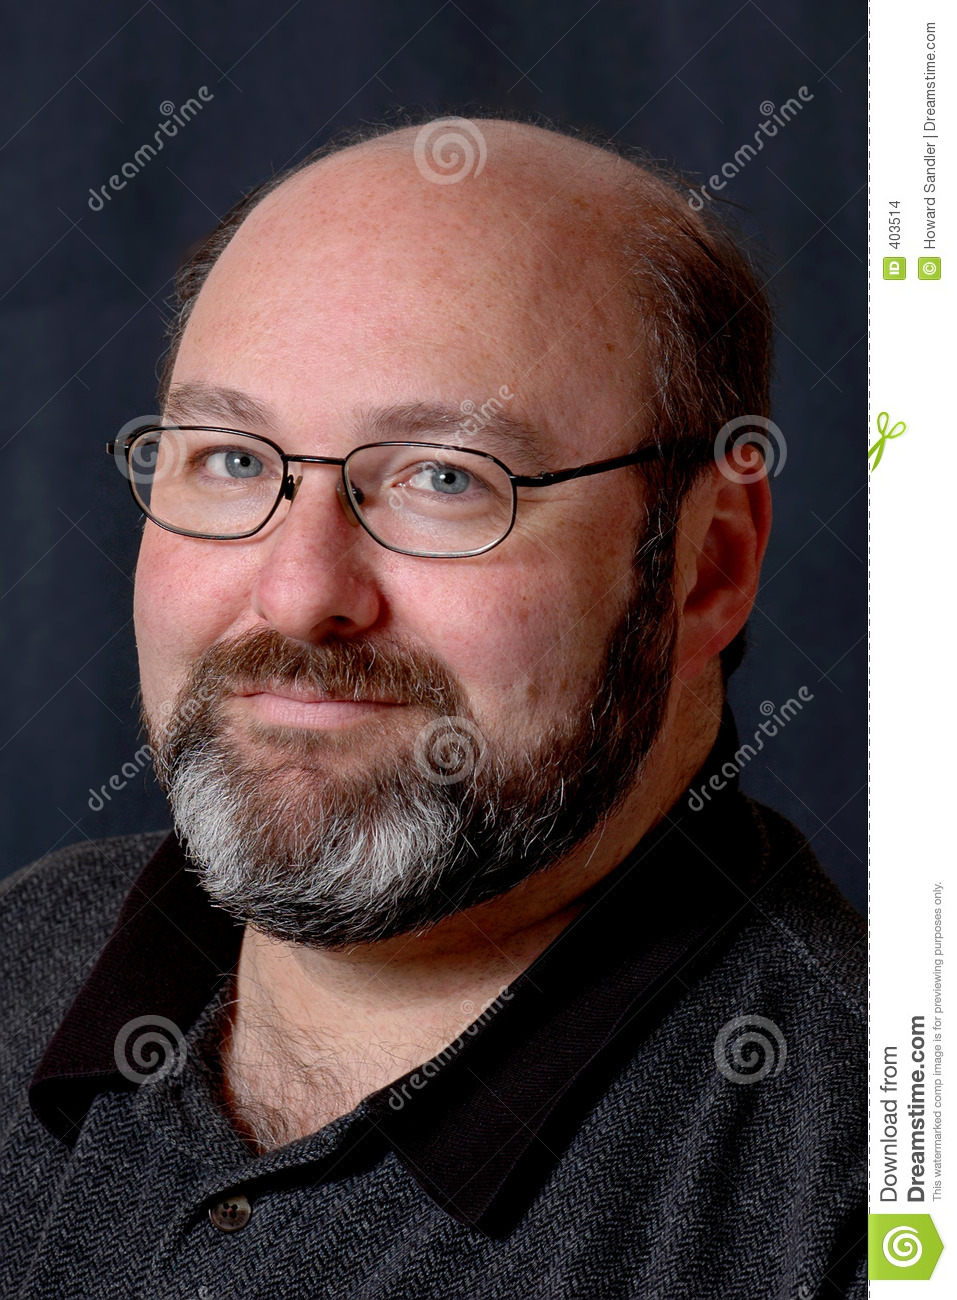 Bald bearded middle aged man with glasses; headshot on dark background ...